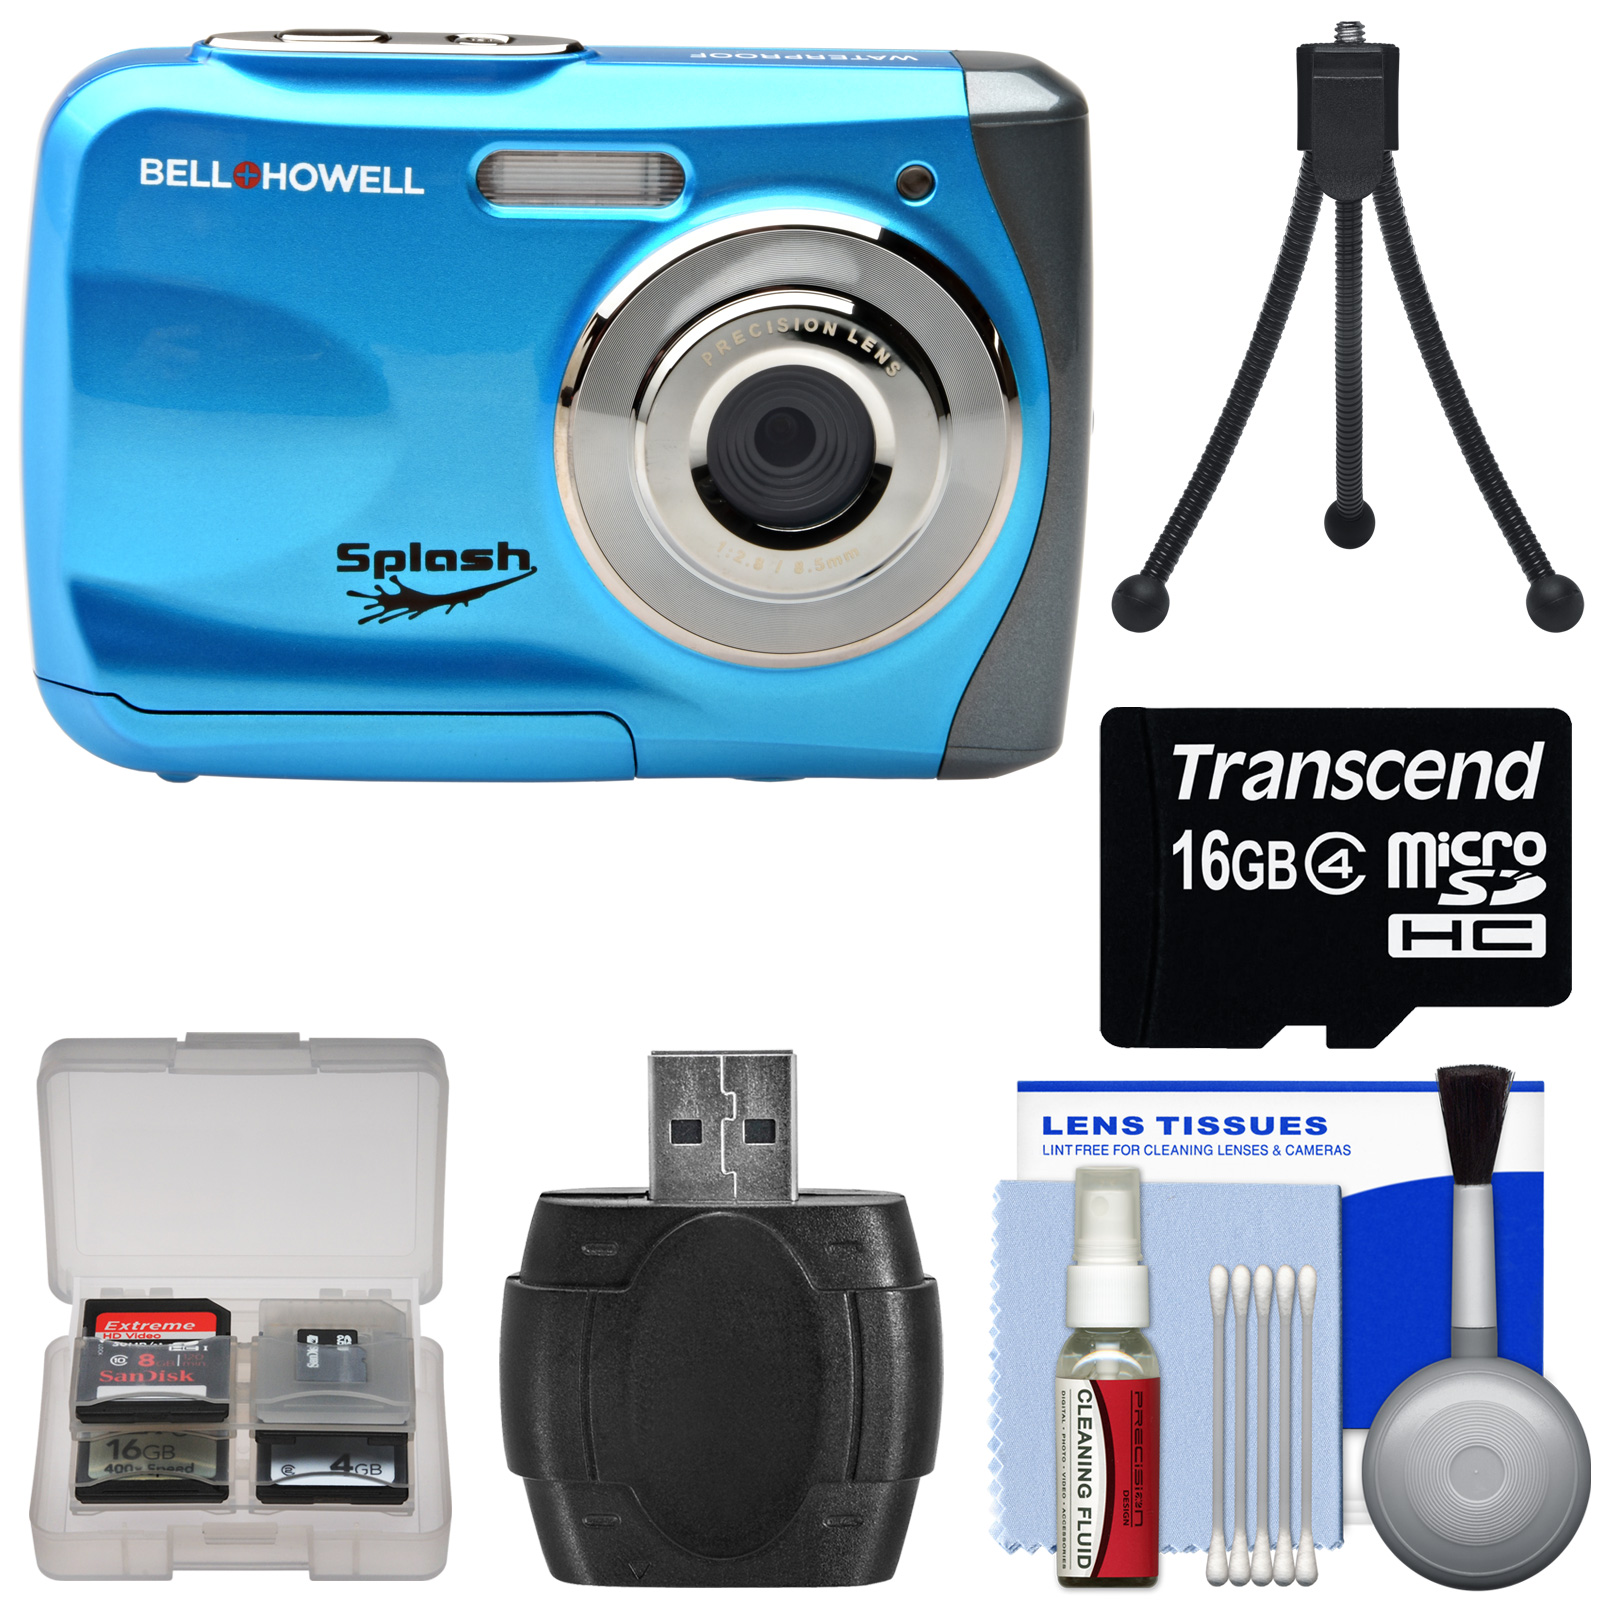 Bell & Howell Splash WP7 Waterproof Digital Camera (Black) with 16GB Card + Tripod + Kit